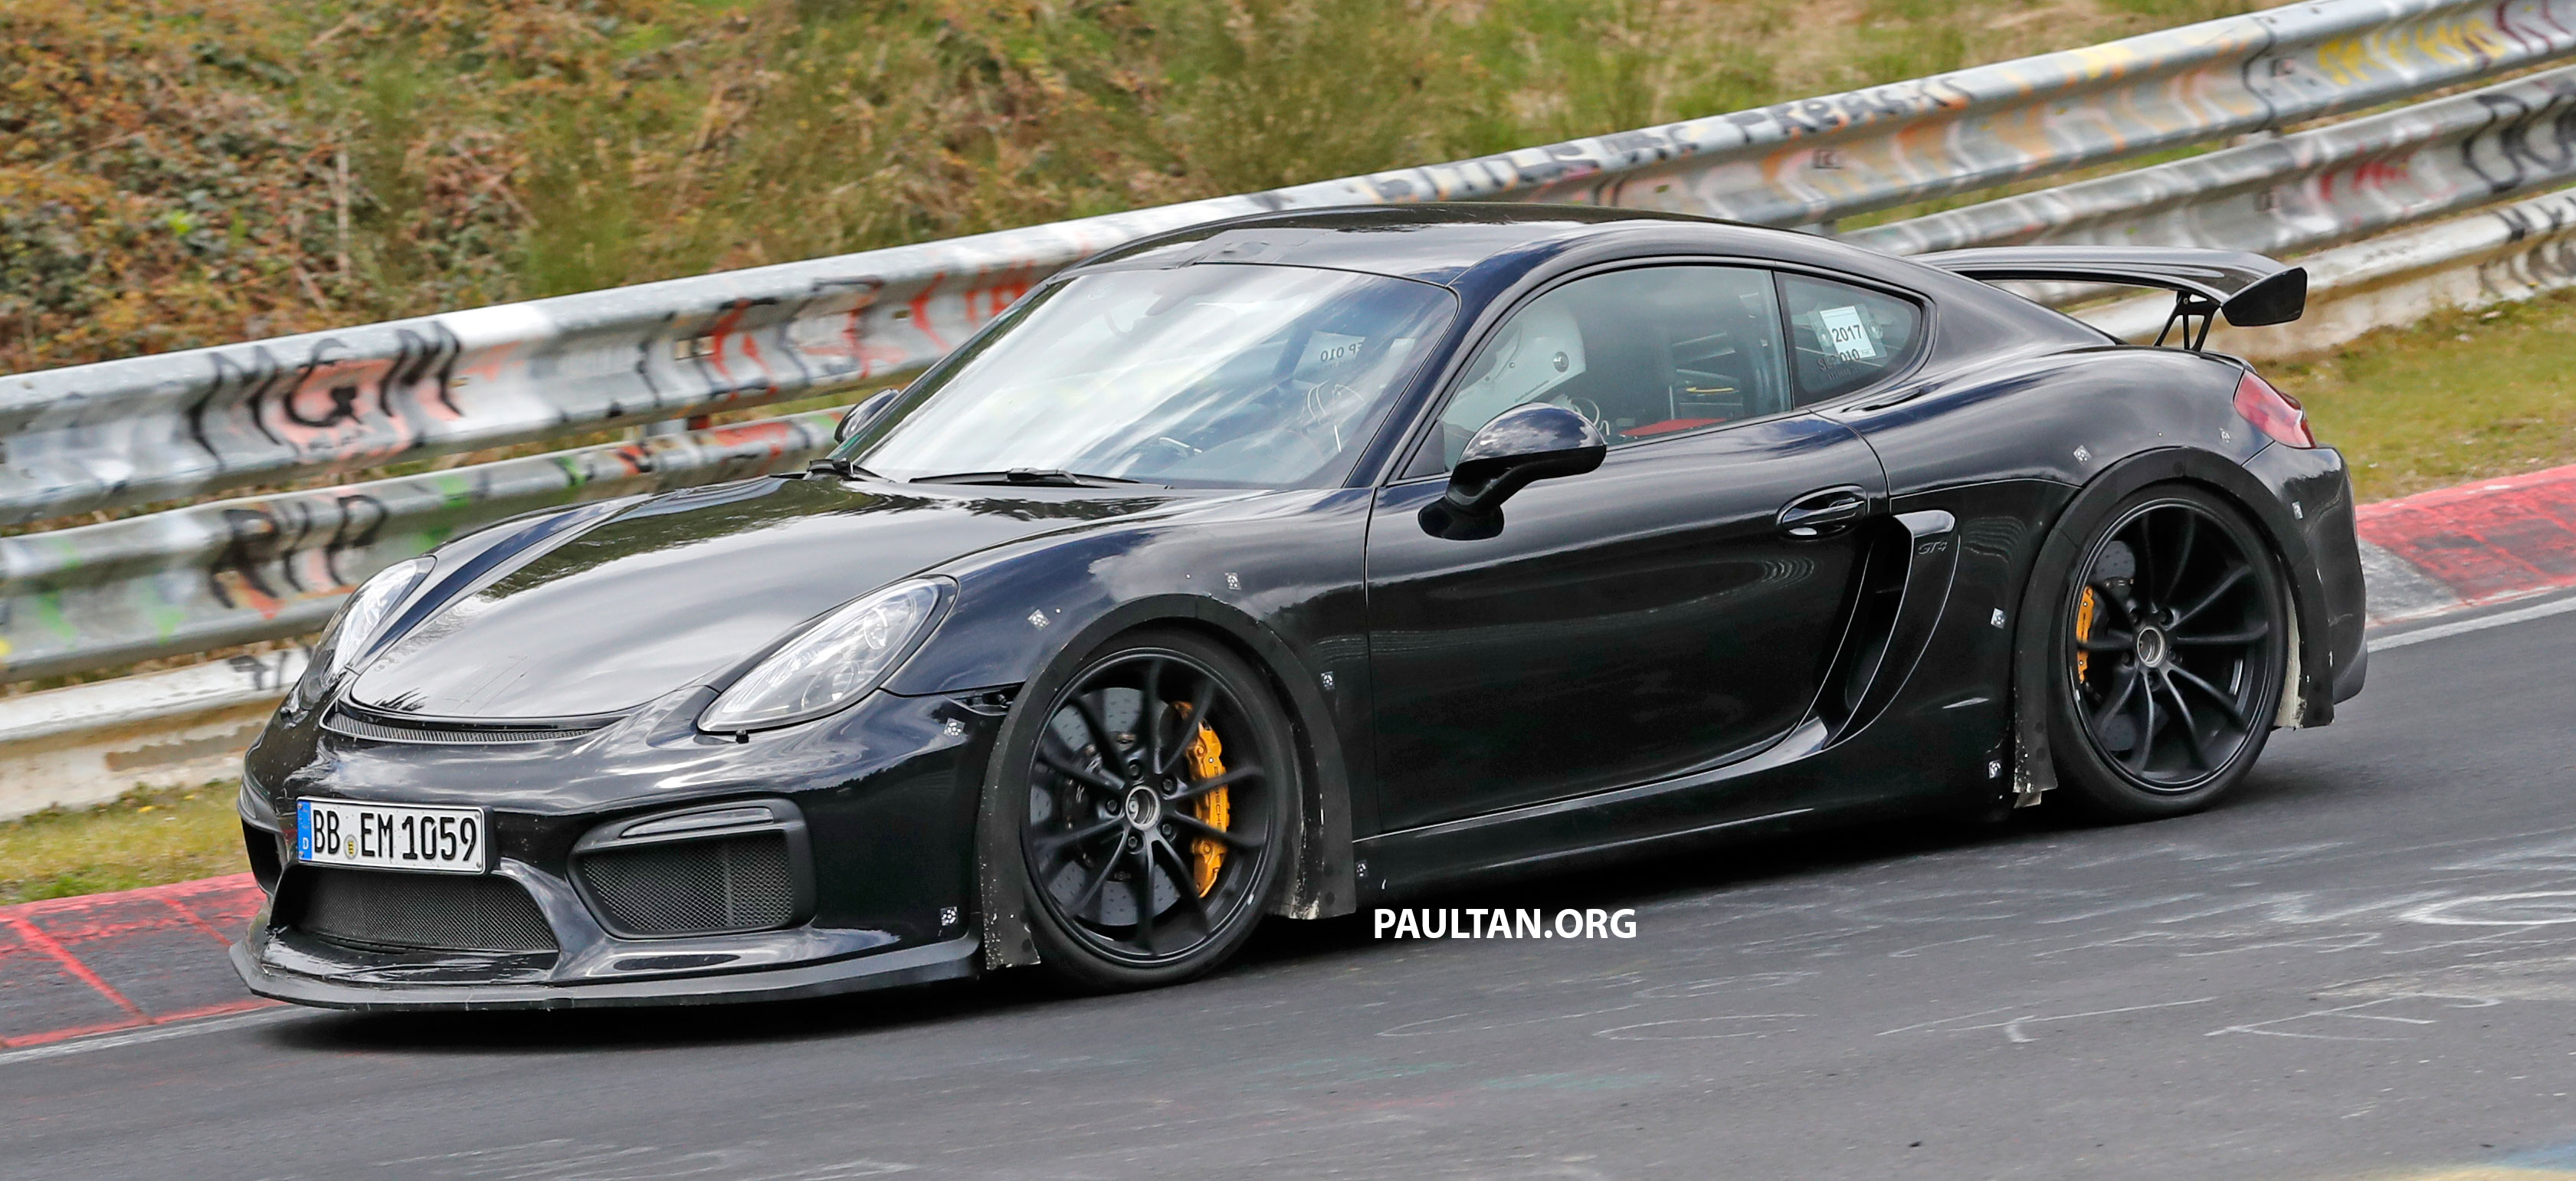 spyshots porsche cayman gt4 rs in the works paul tan image 655896. Black Bedroom Furniture Sets. Home Design Ideas